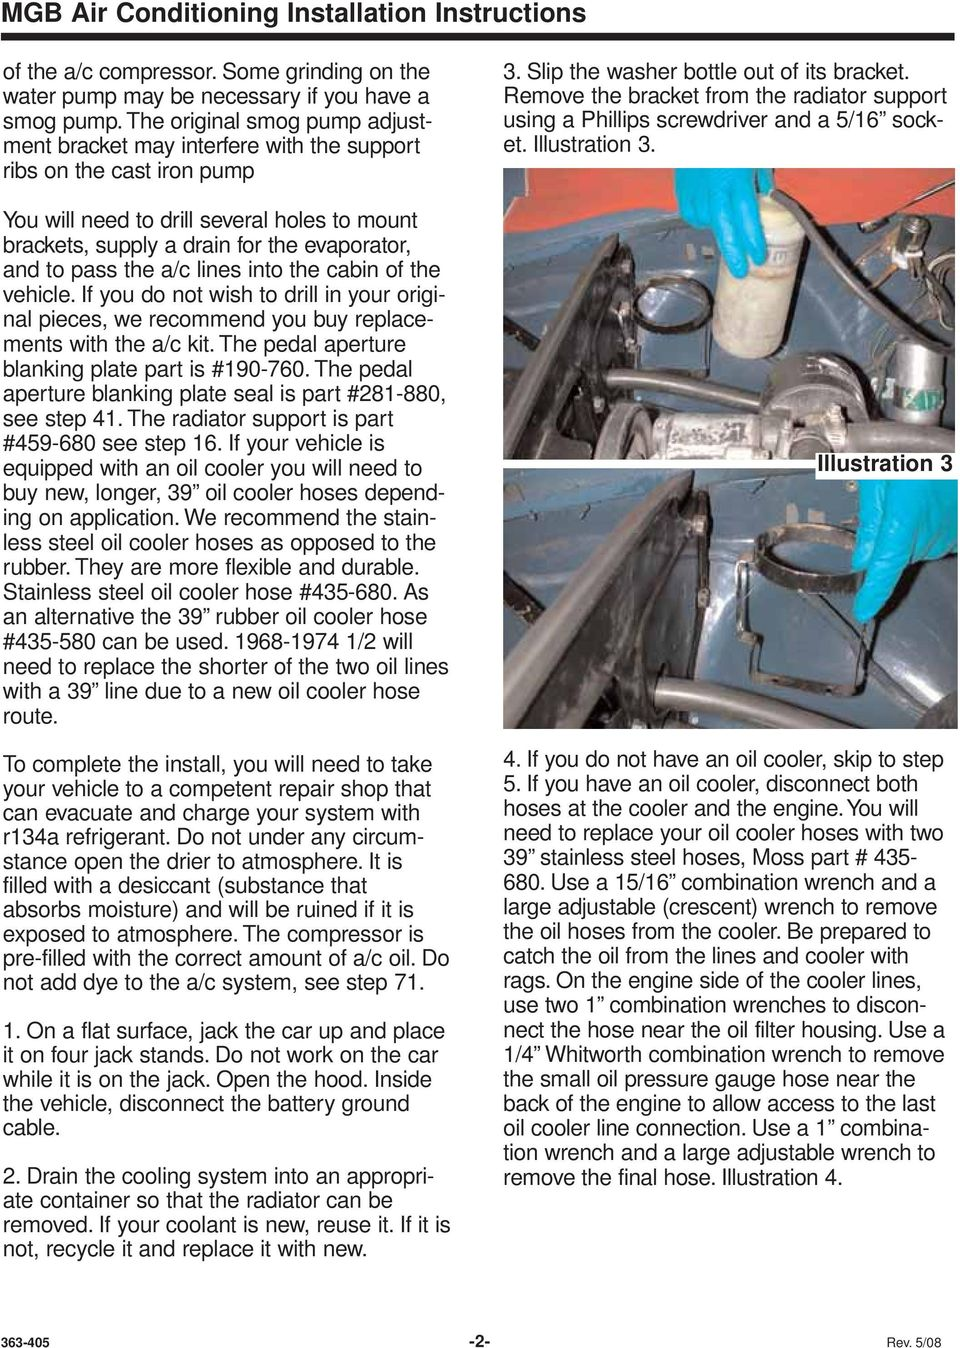 Mgb Air Conditioning Installation Instructions For Lhd Cars W Detailed A C Compressor Bracketry Diagram Pass The Lines Into Cabin Of Vehicle If You Do